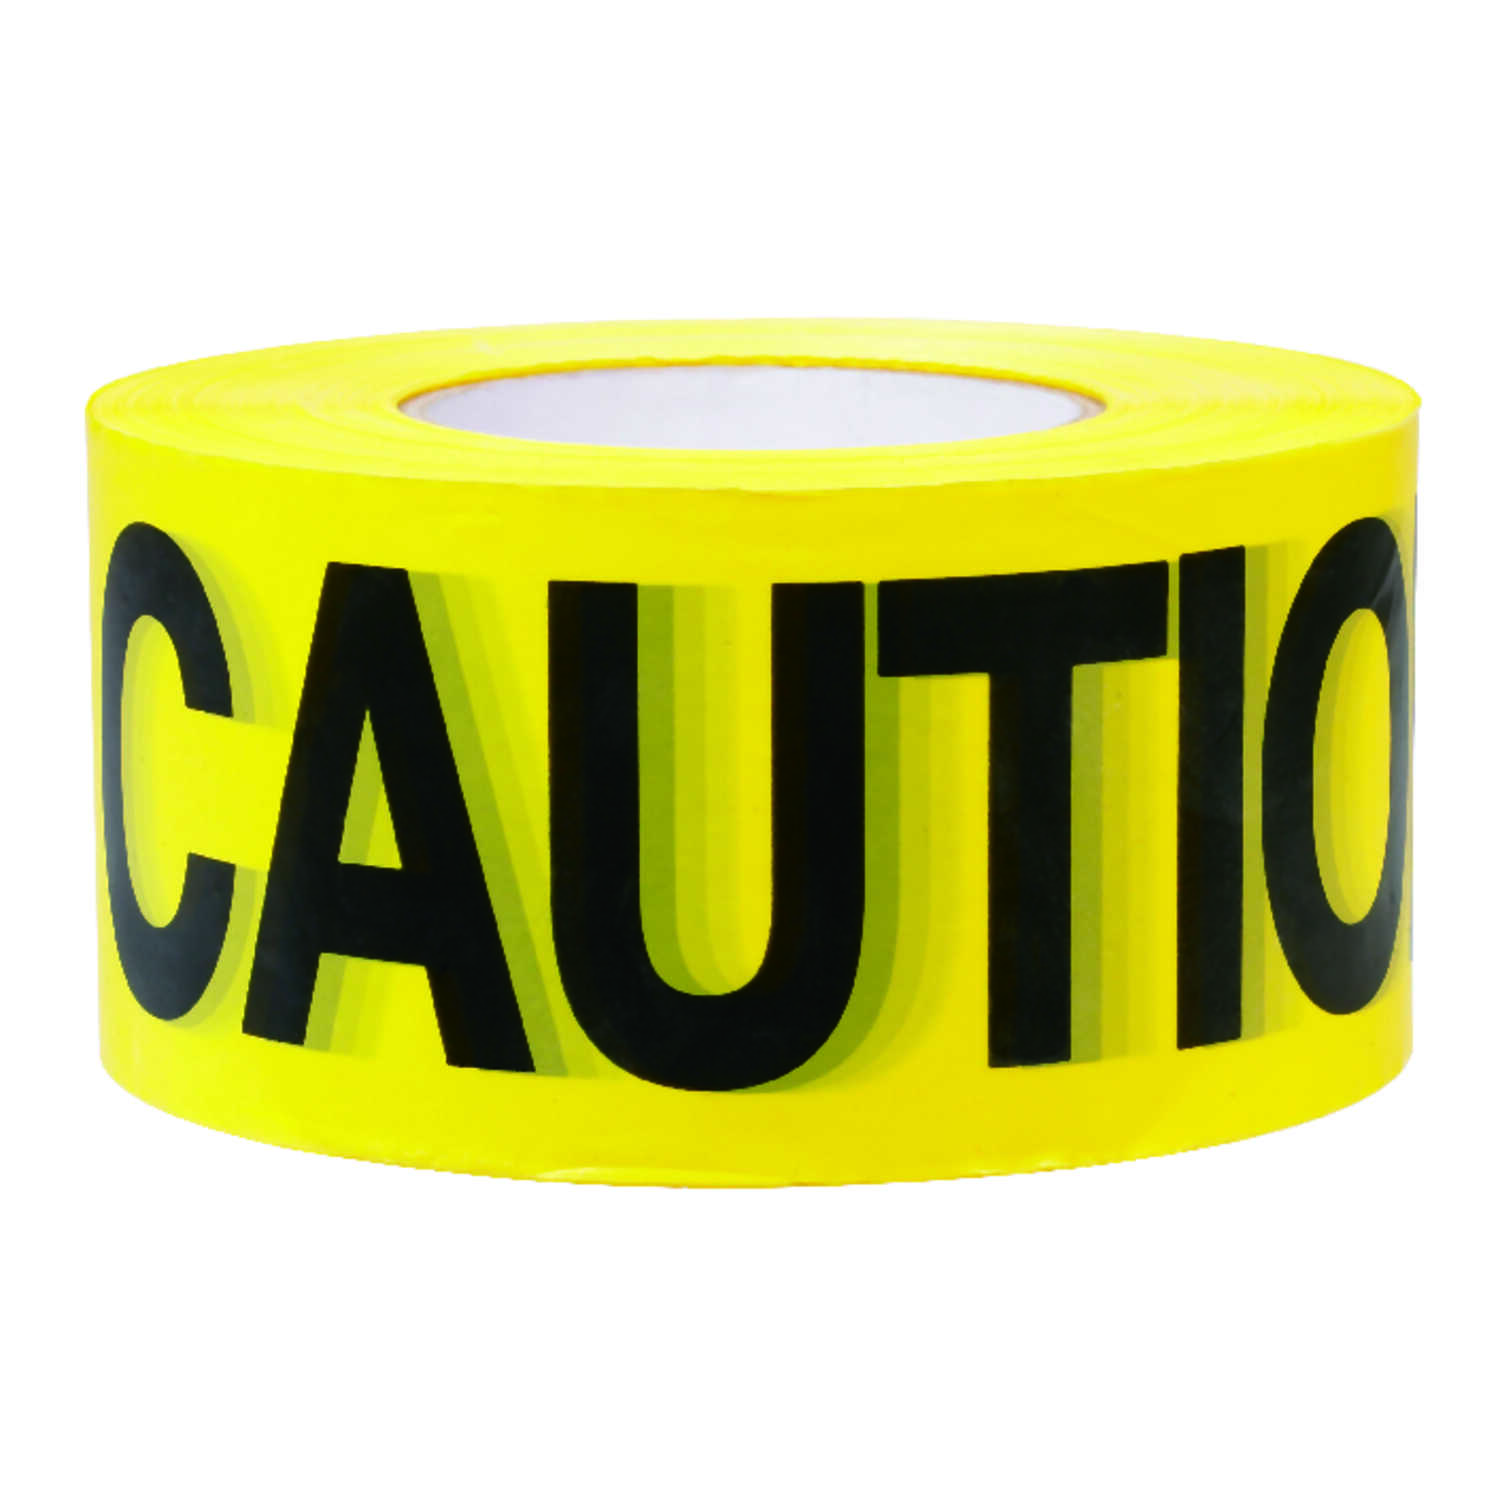 C.H. Hanson  Sub-Zero  1000 ft. L x 3 in. W Plastic  Caution  Barricade Tape